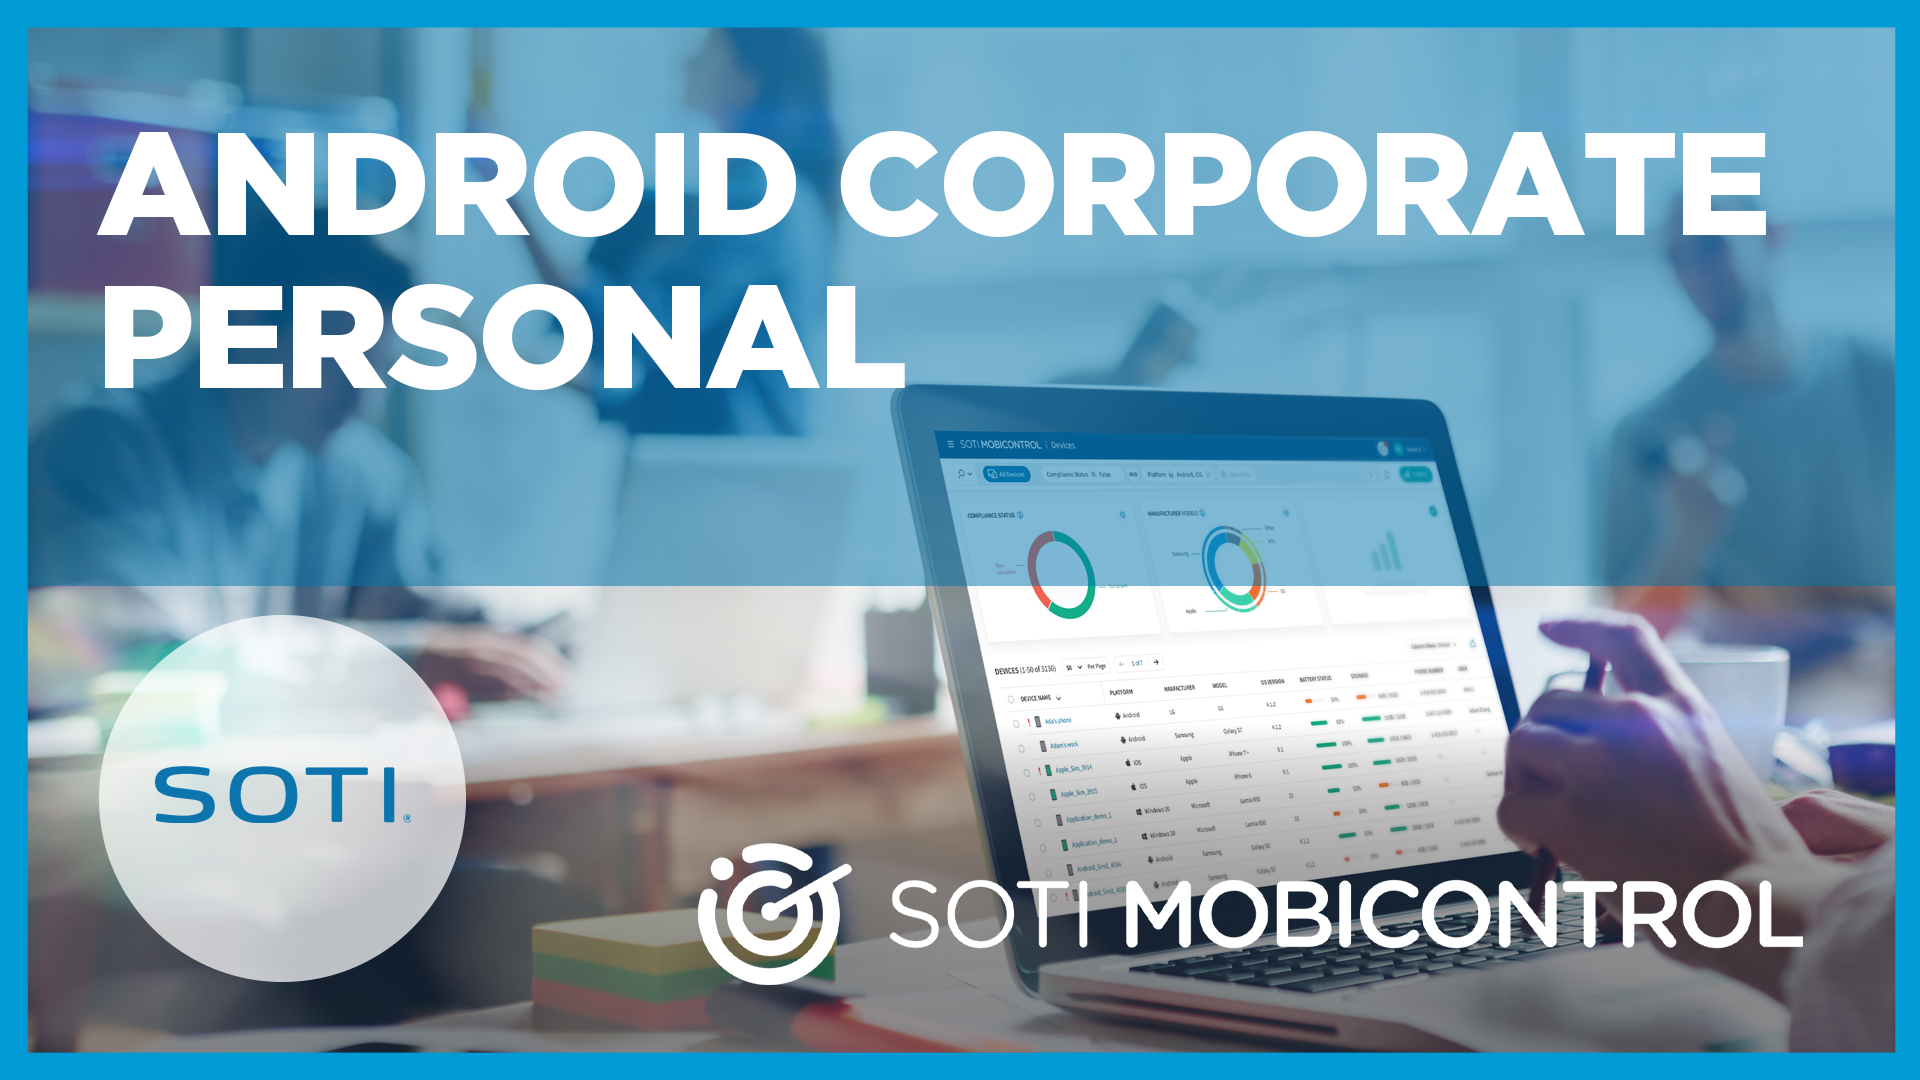 Video on SOTI MobiControl Android Corporate Personal